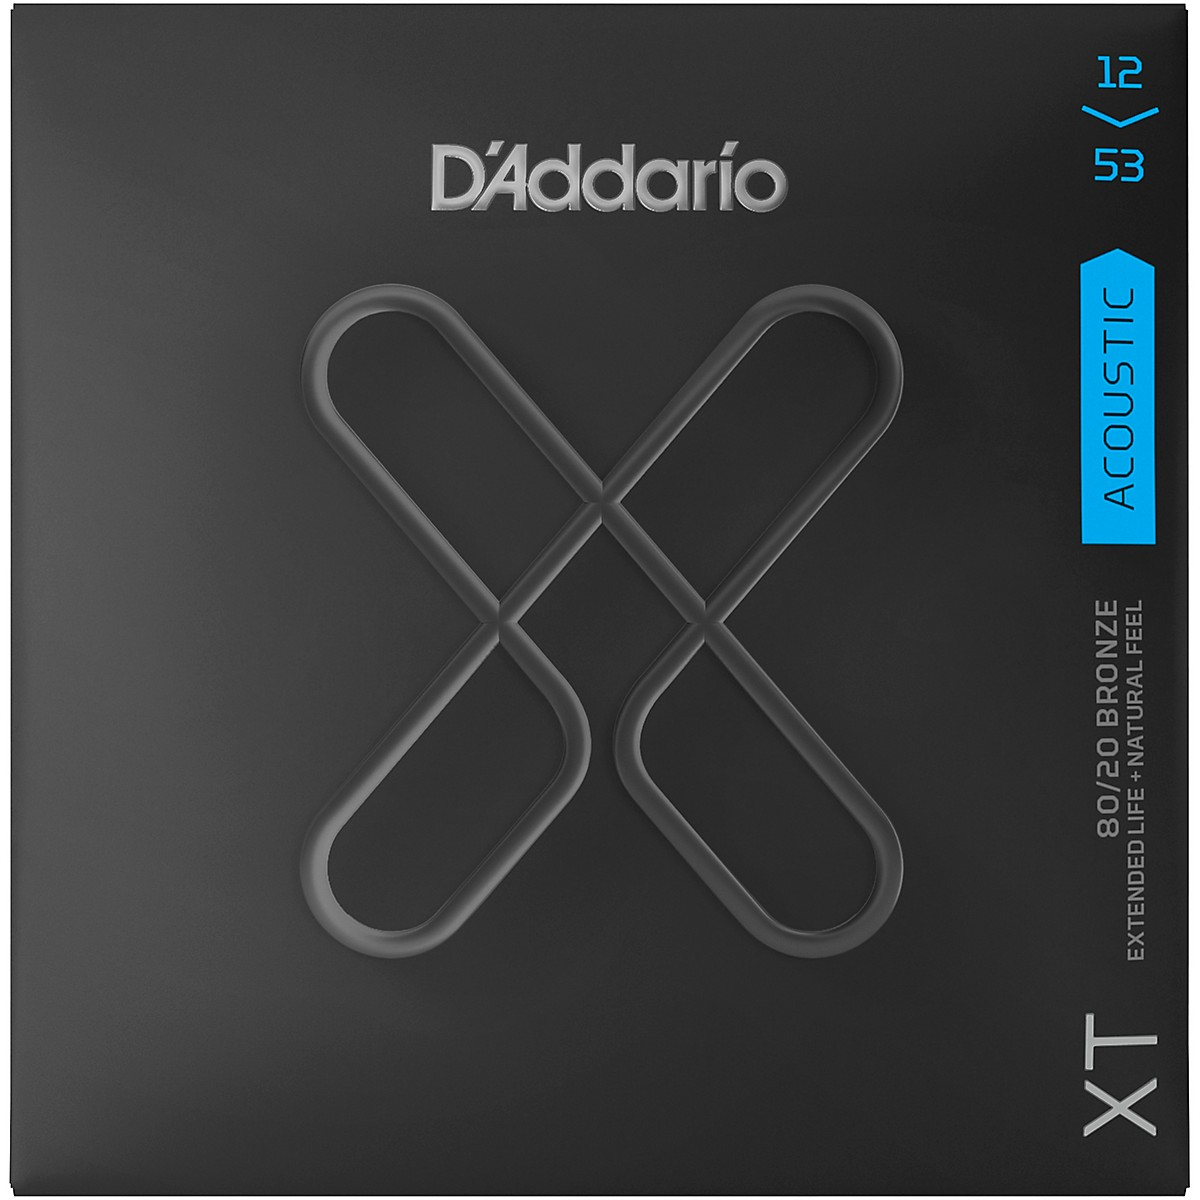 D'Addario XT Acoustic Strings, Light, 12-53